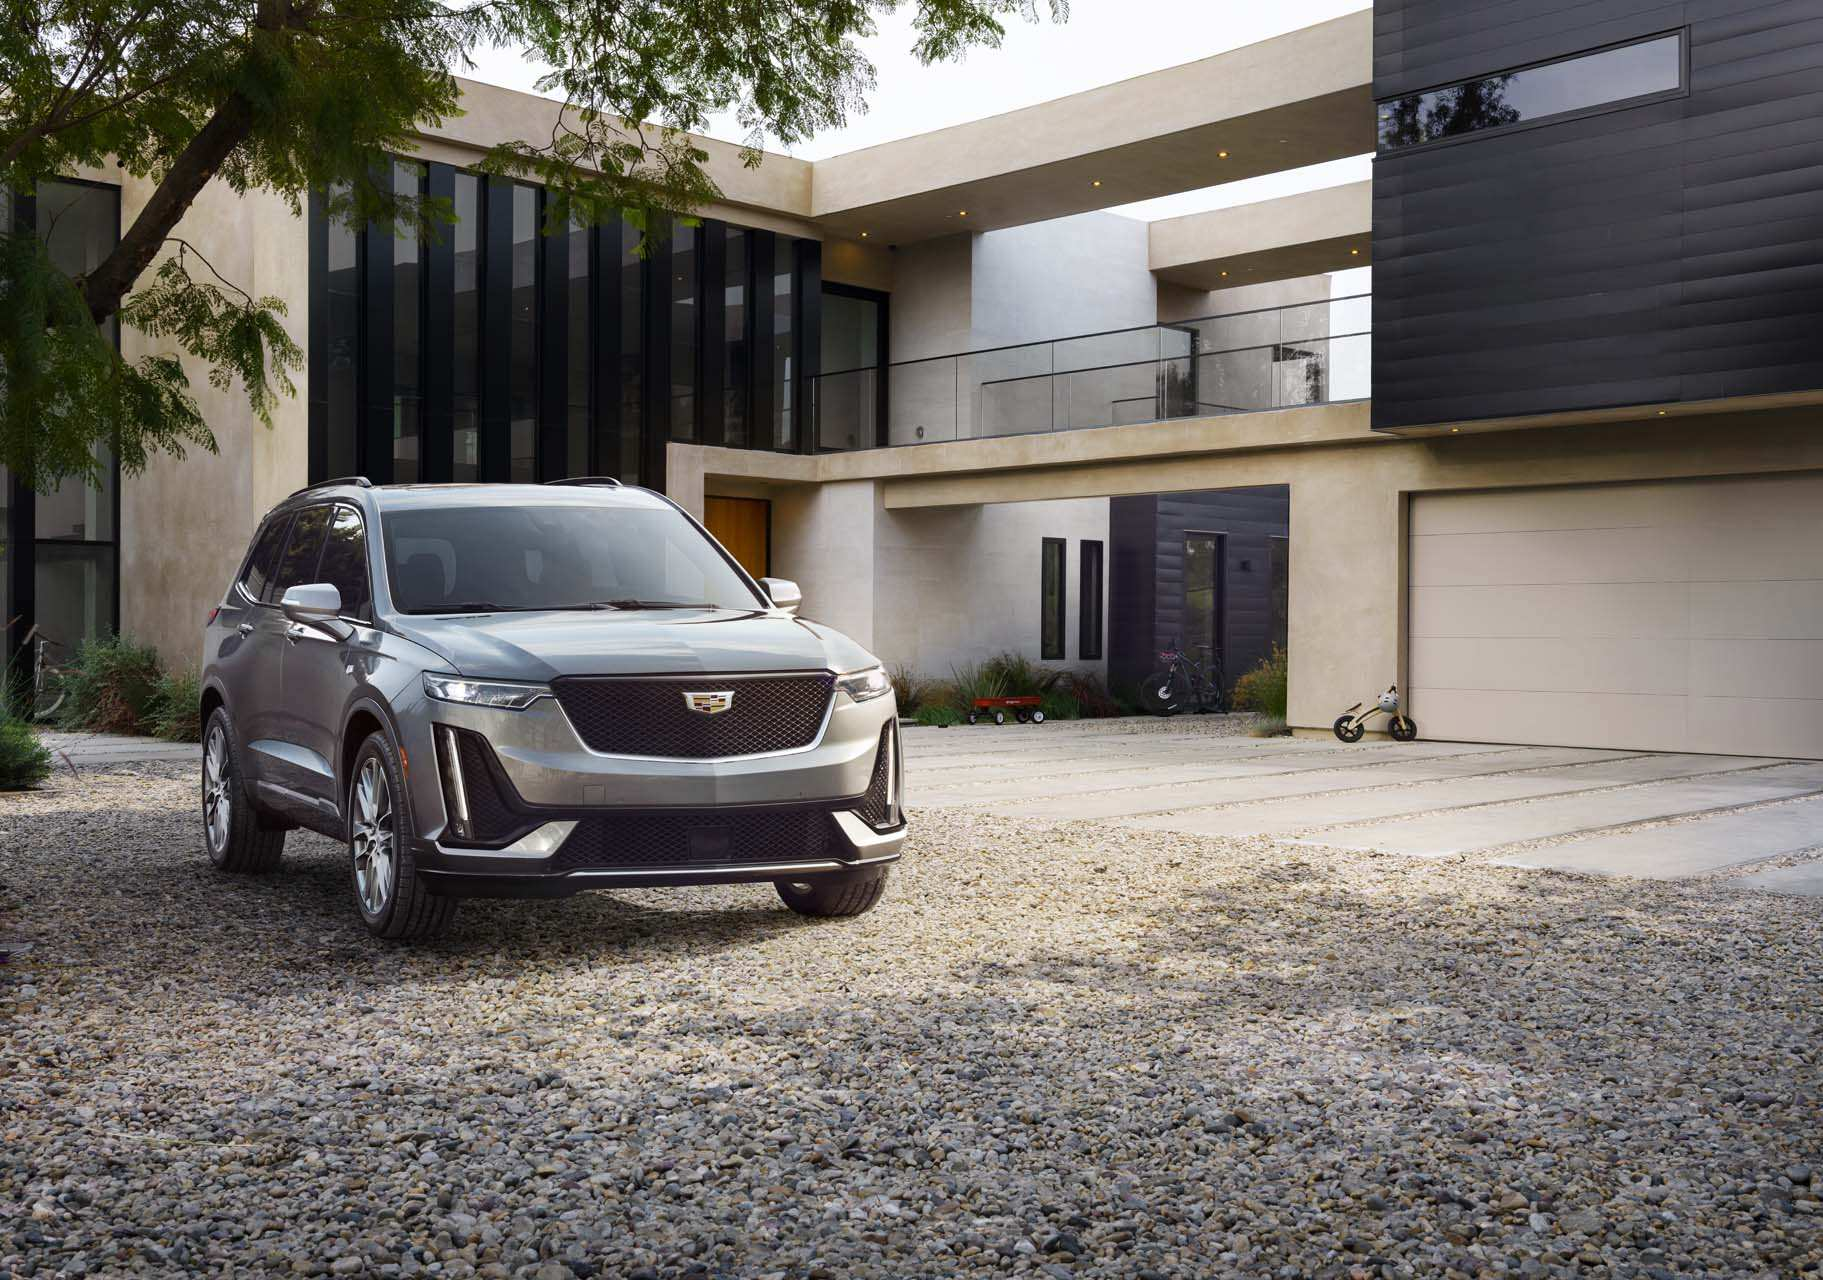 86 The 2020 Cadillac Xt6 Dimensions Spesification